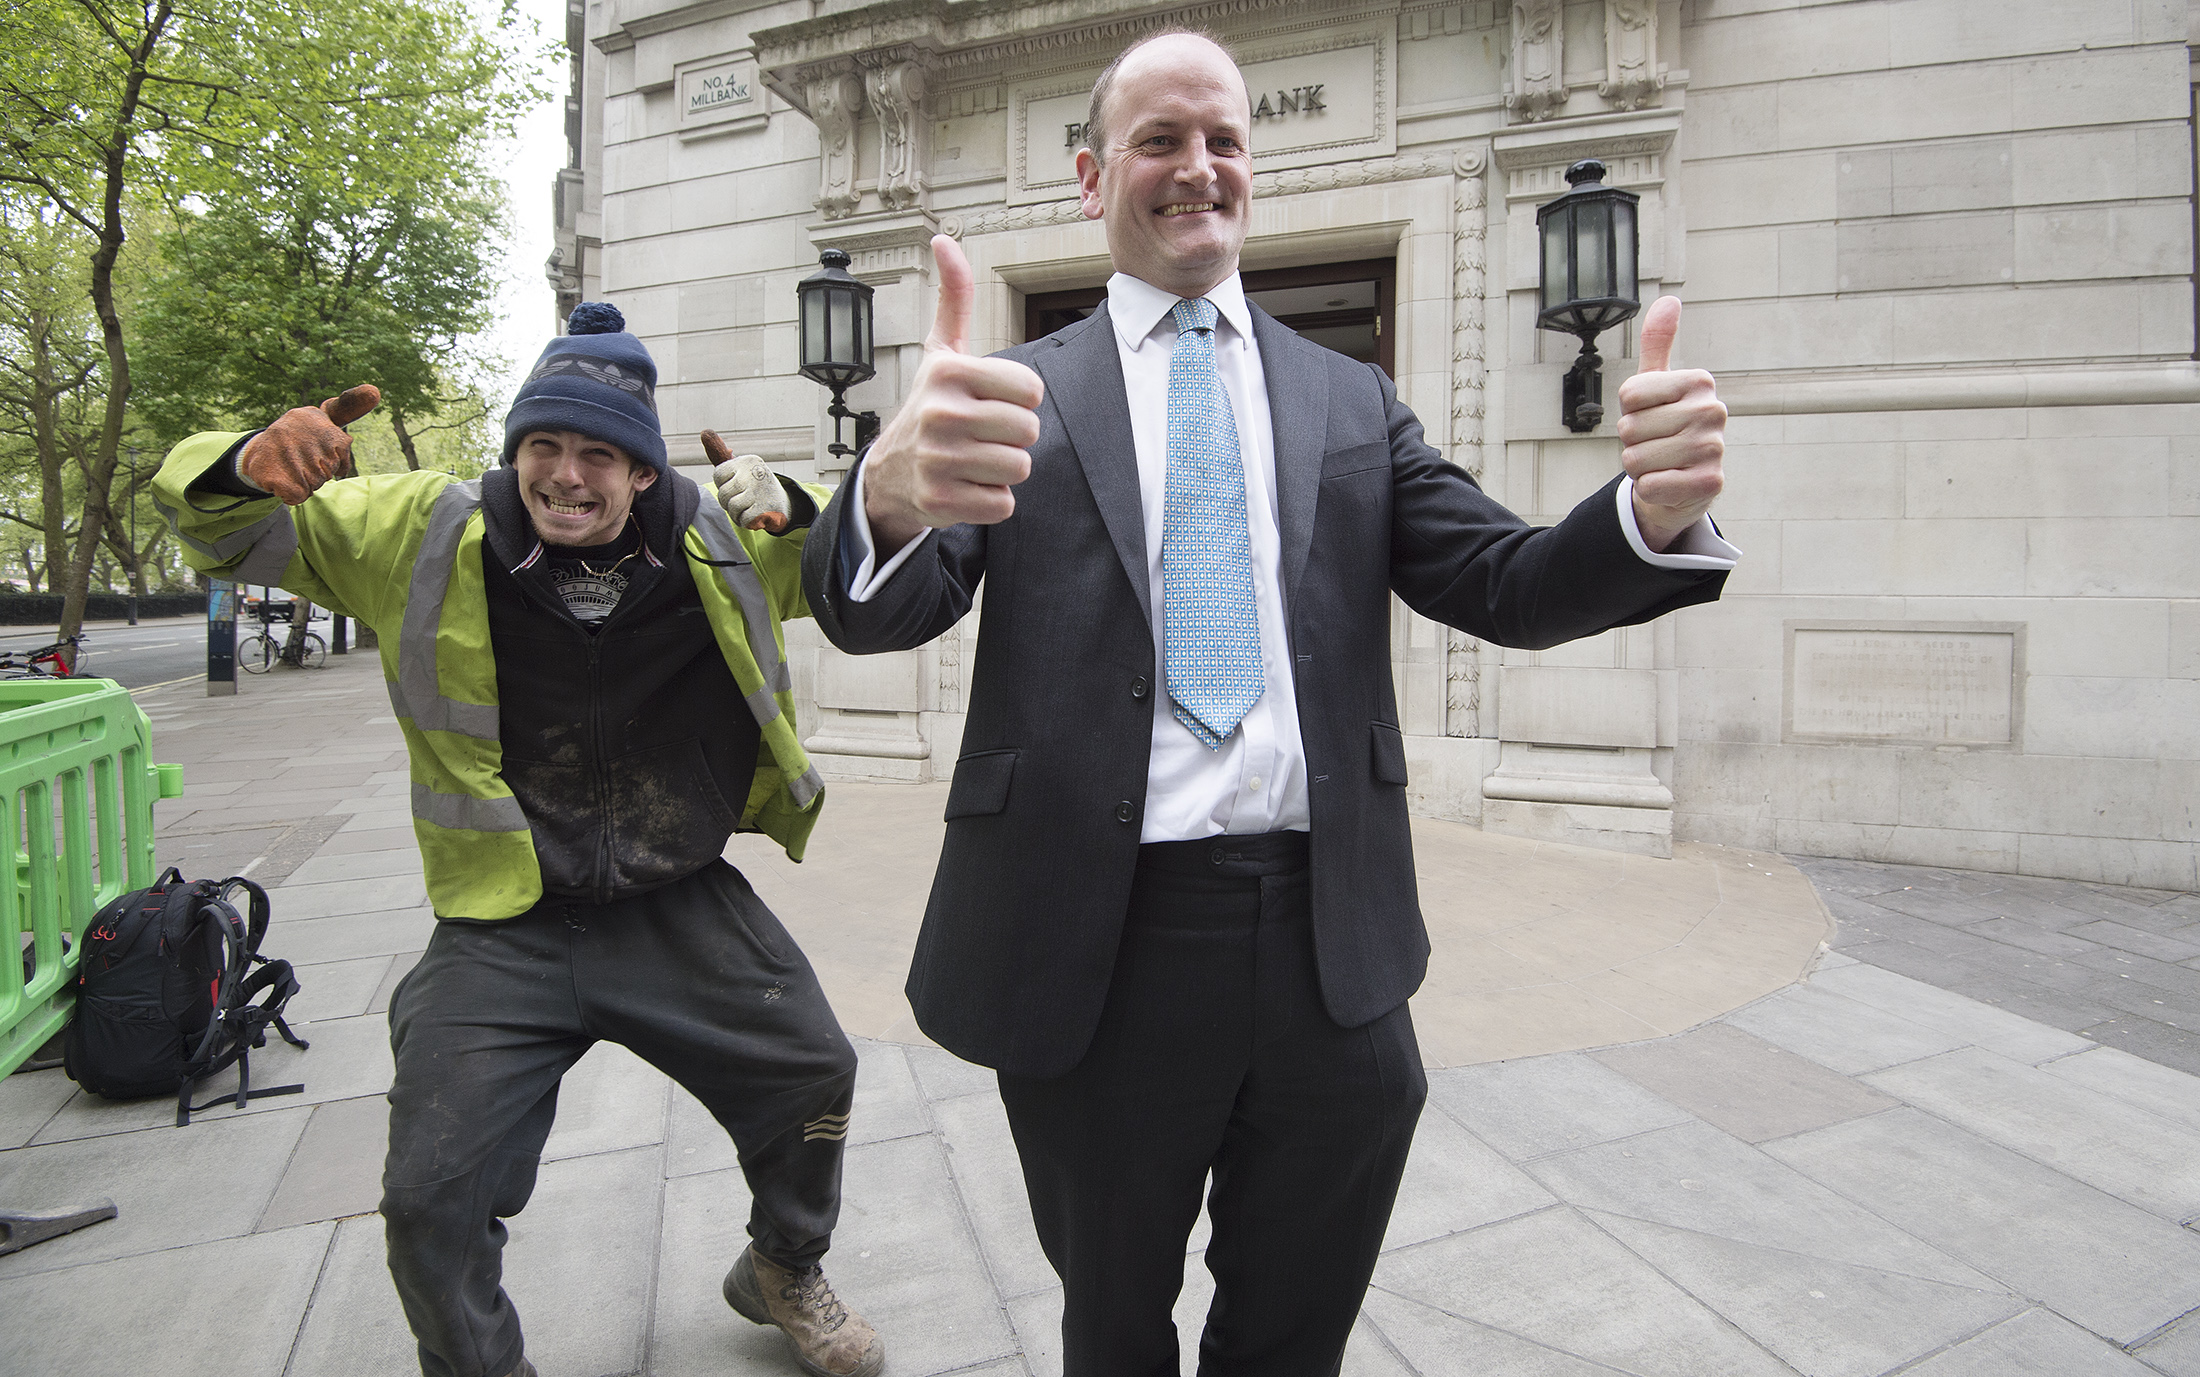 Douglas Carswell, former Tory/UKIP MP, after announcing that he would not stand at the upcoming General Election.Photo by Eddie Mulholland  20 April 2017